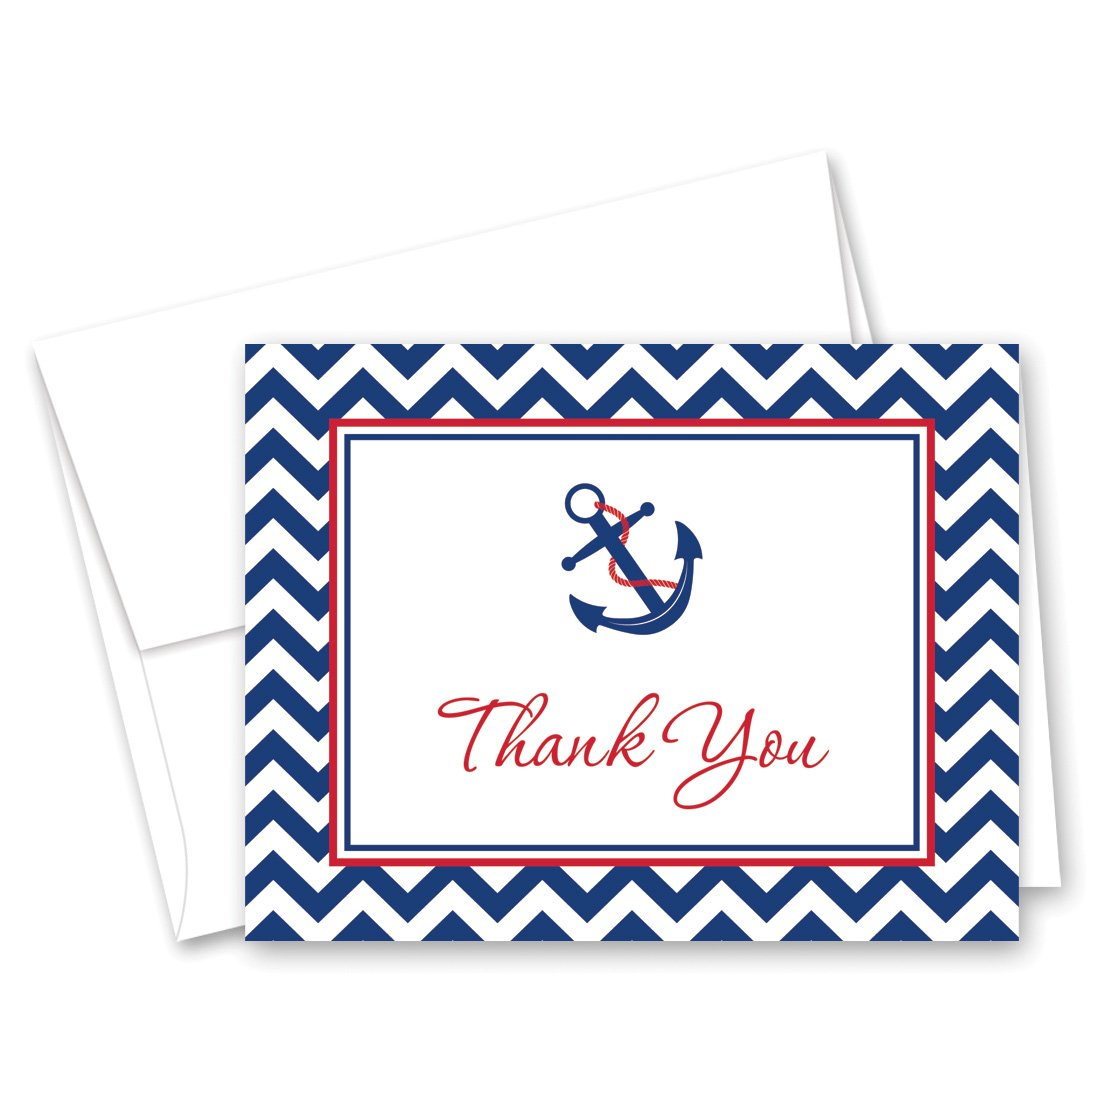 50 Nautical Thank You Cards (Red & Navy)